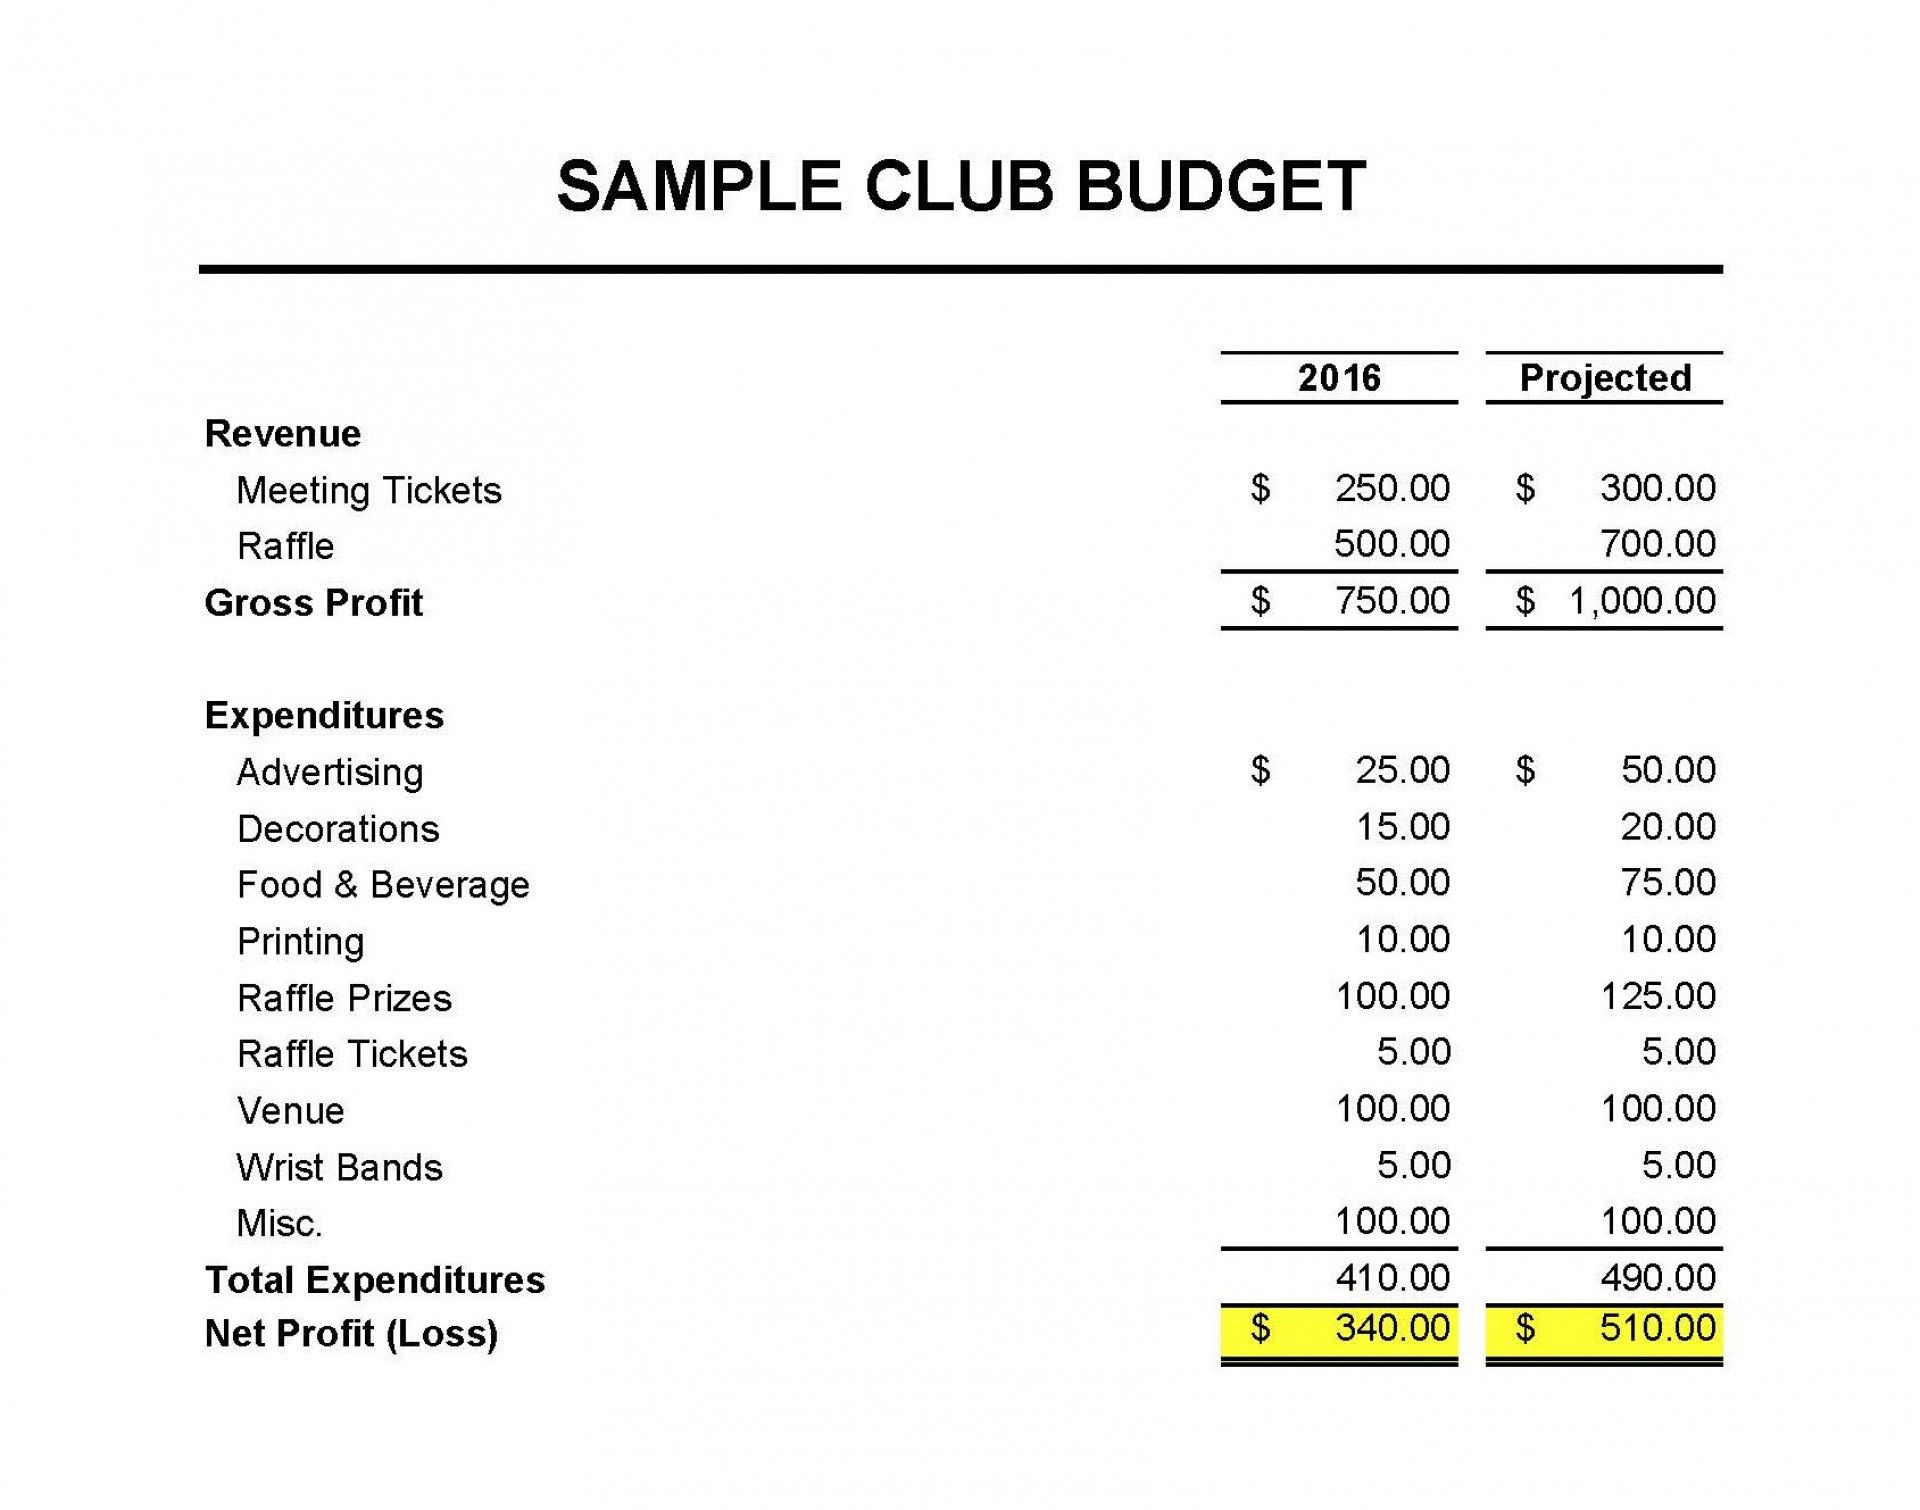 Treasurer's Report Template Non Profit Excel from www.addictionary.org